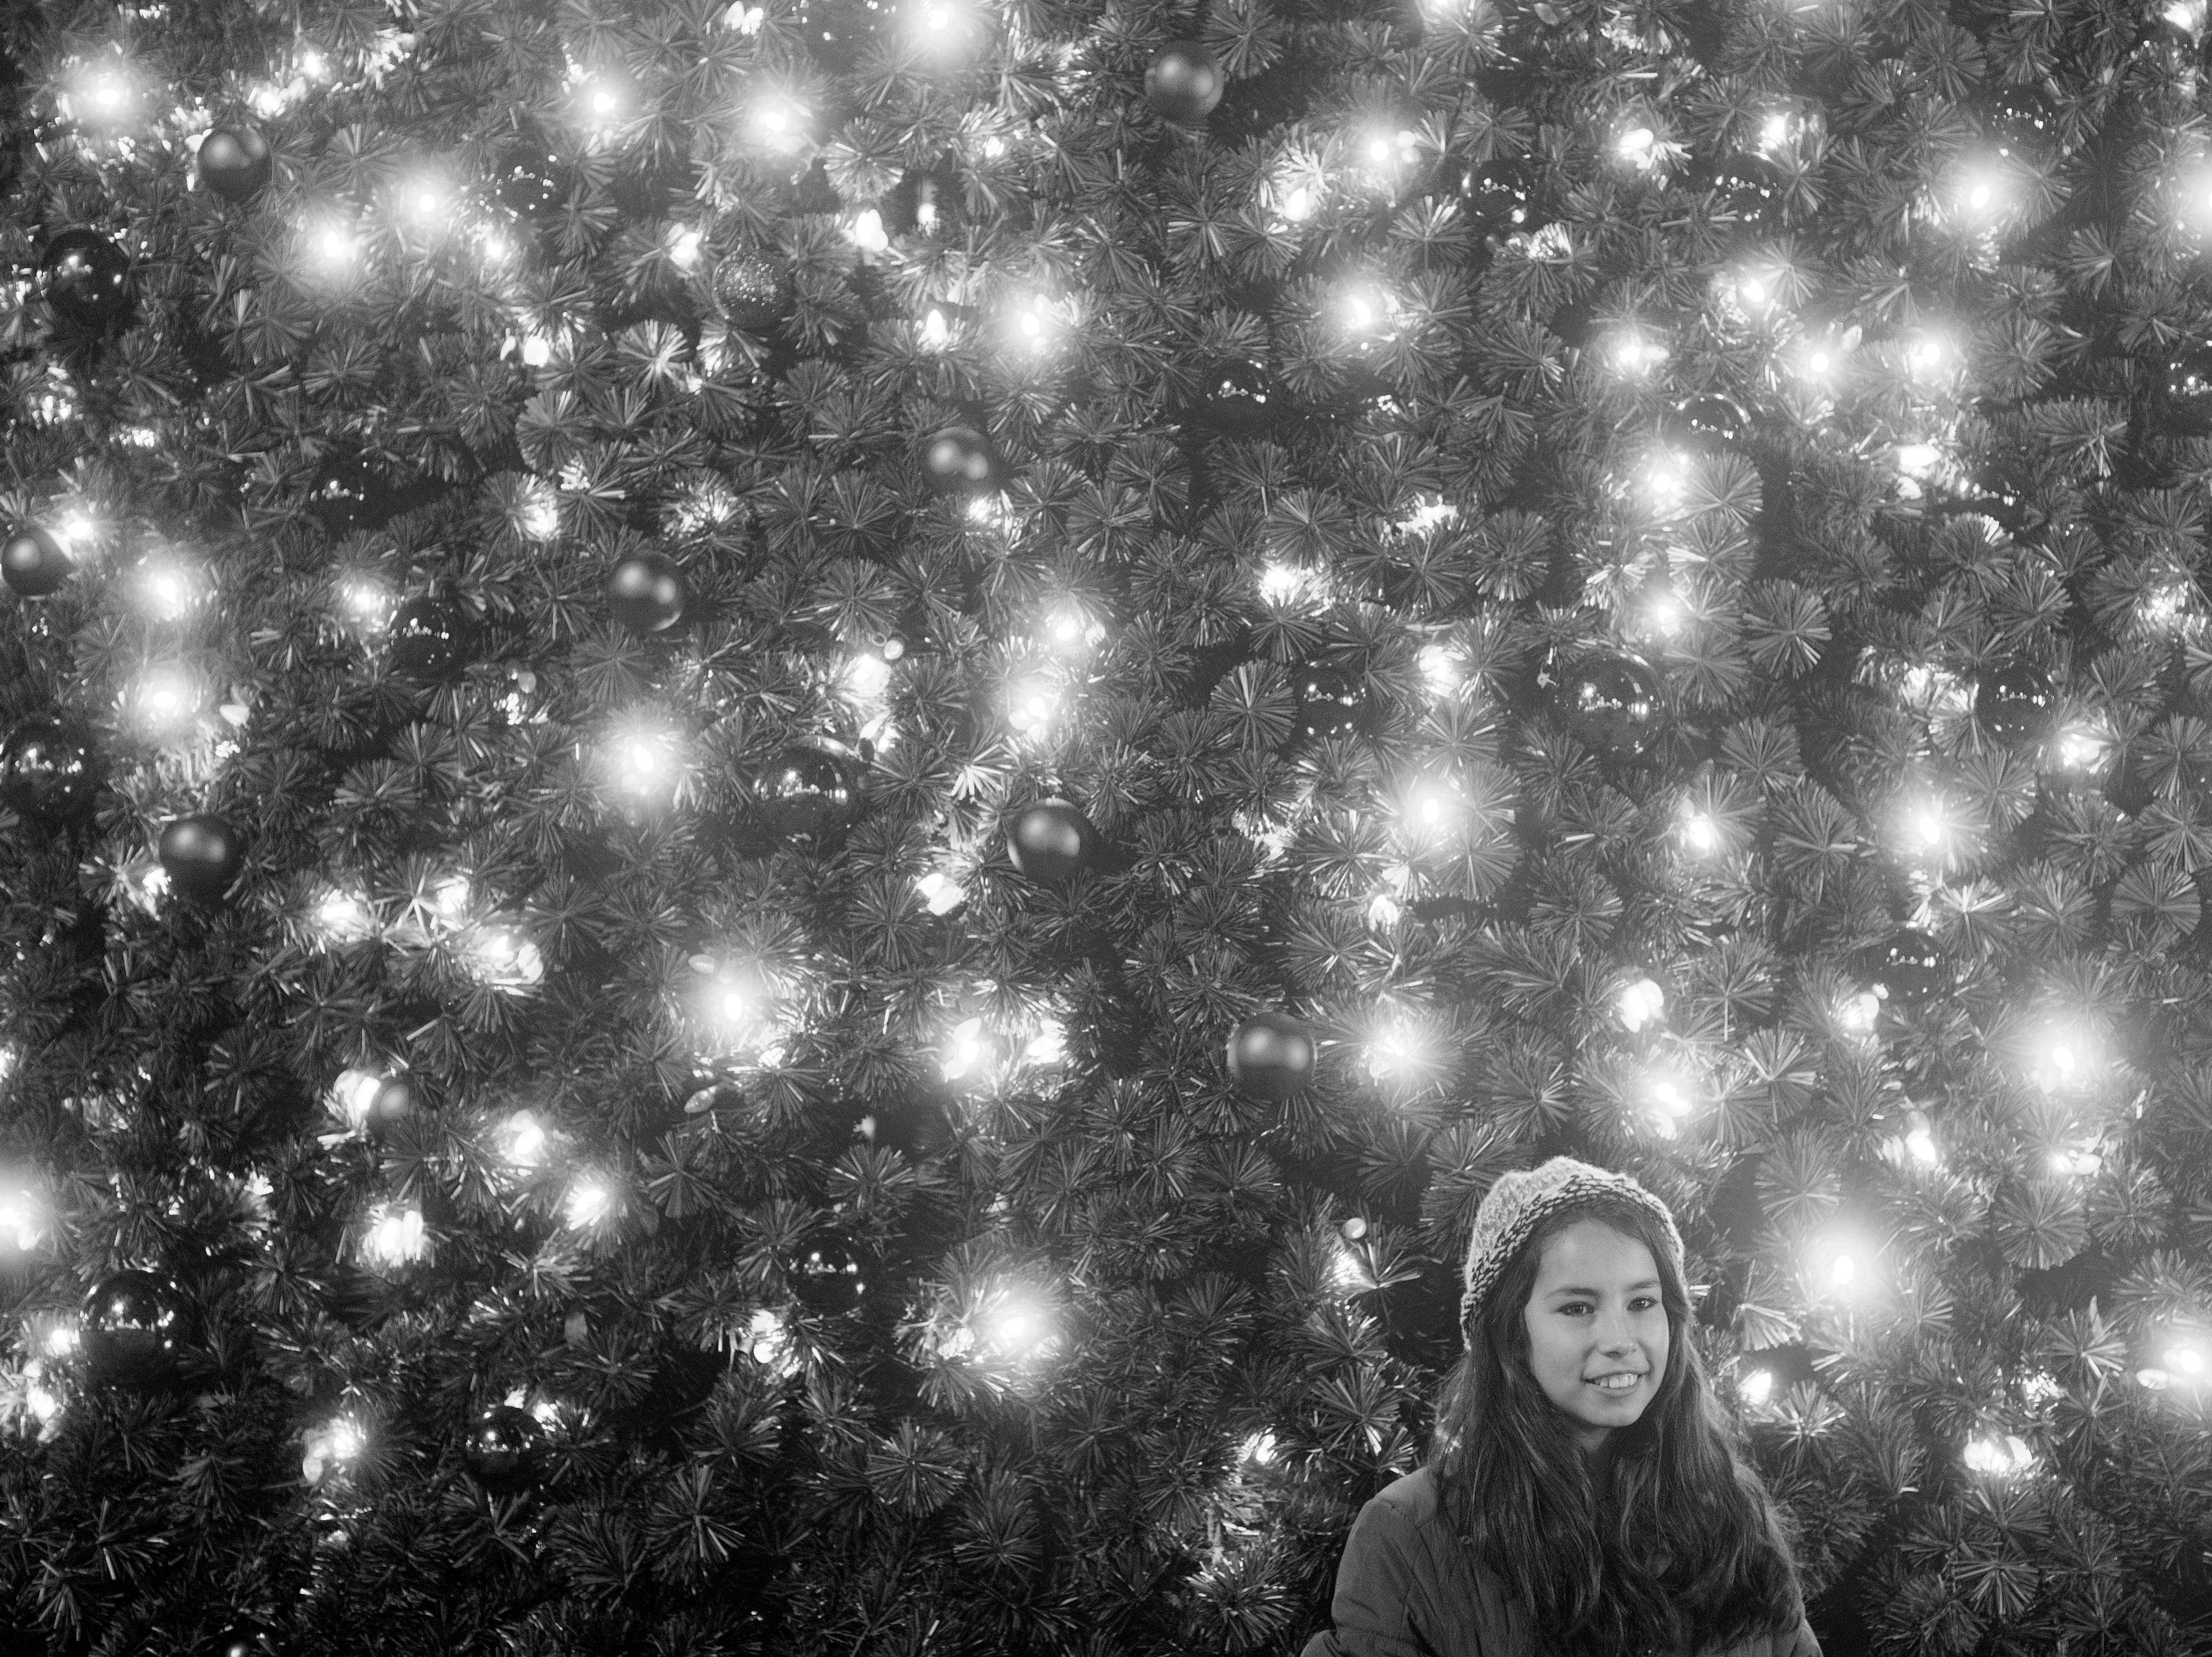 Justice Stultz-Berry poses for a photograph at the Krutch Park Christmas Tree on New Year's Eve, Thursday, December 31, 2015.